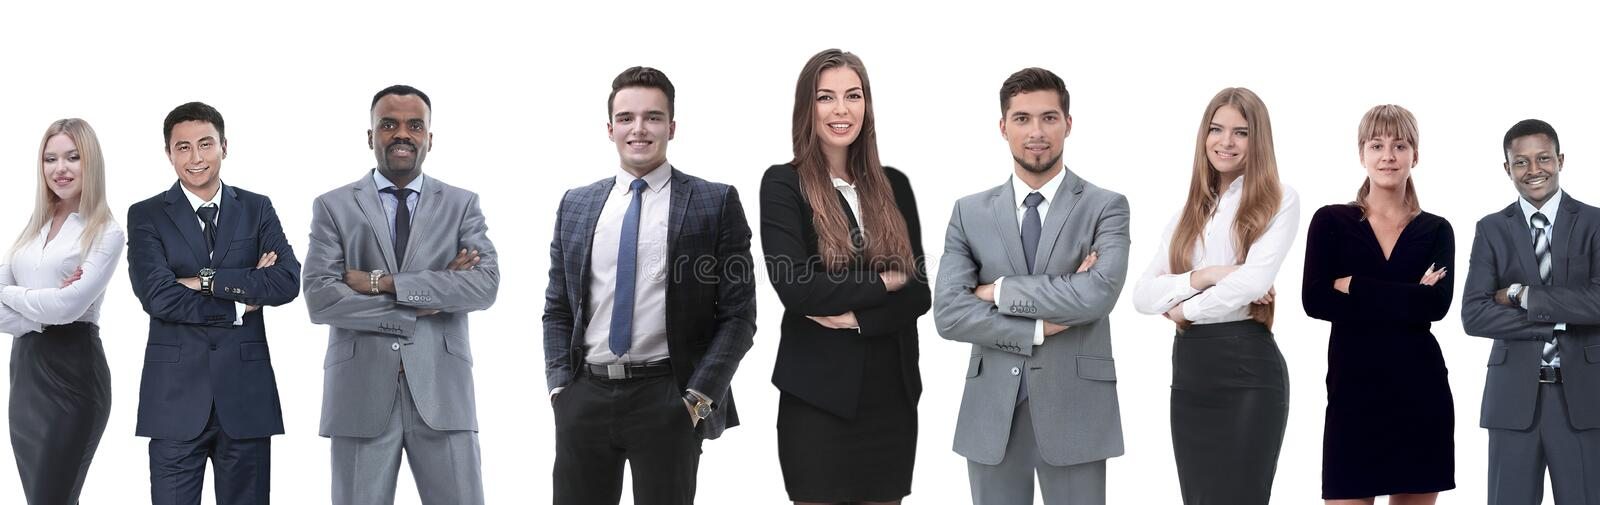 In full growth.professional business team isolated on white royalty free stock photo